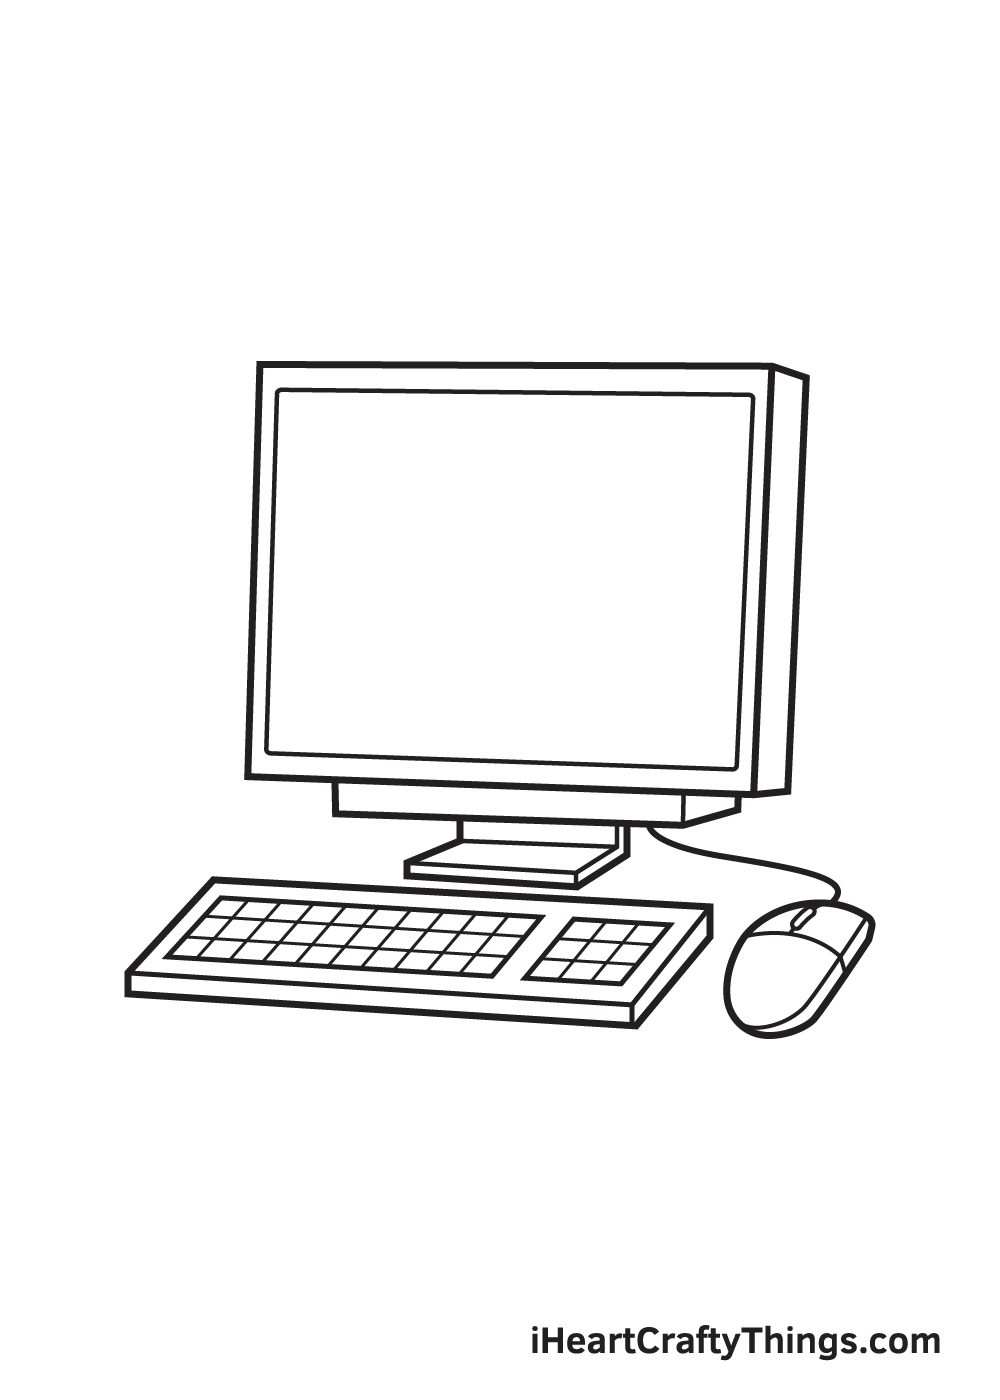 Computer Drawing How To Draw A Computer Step By Step